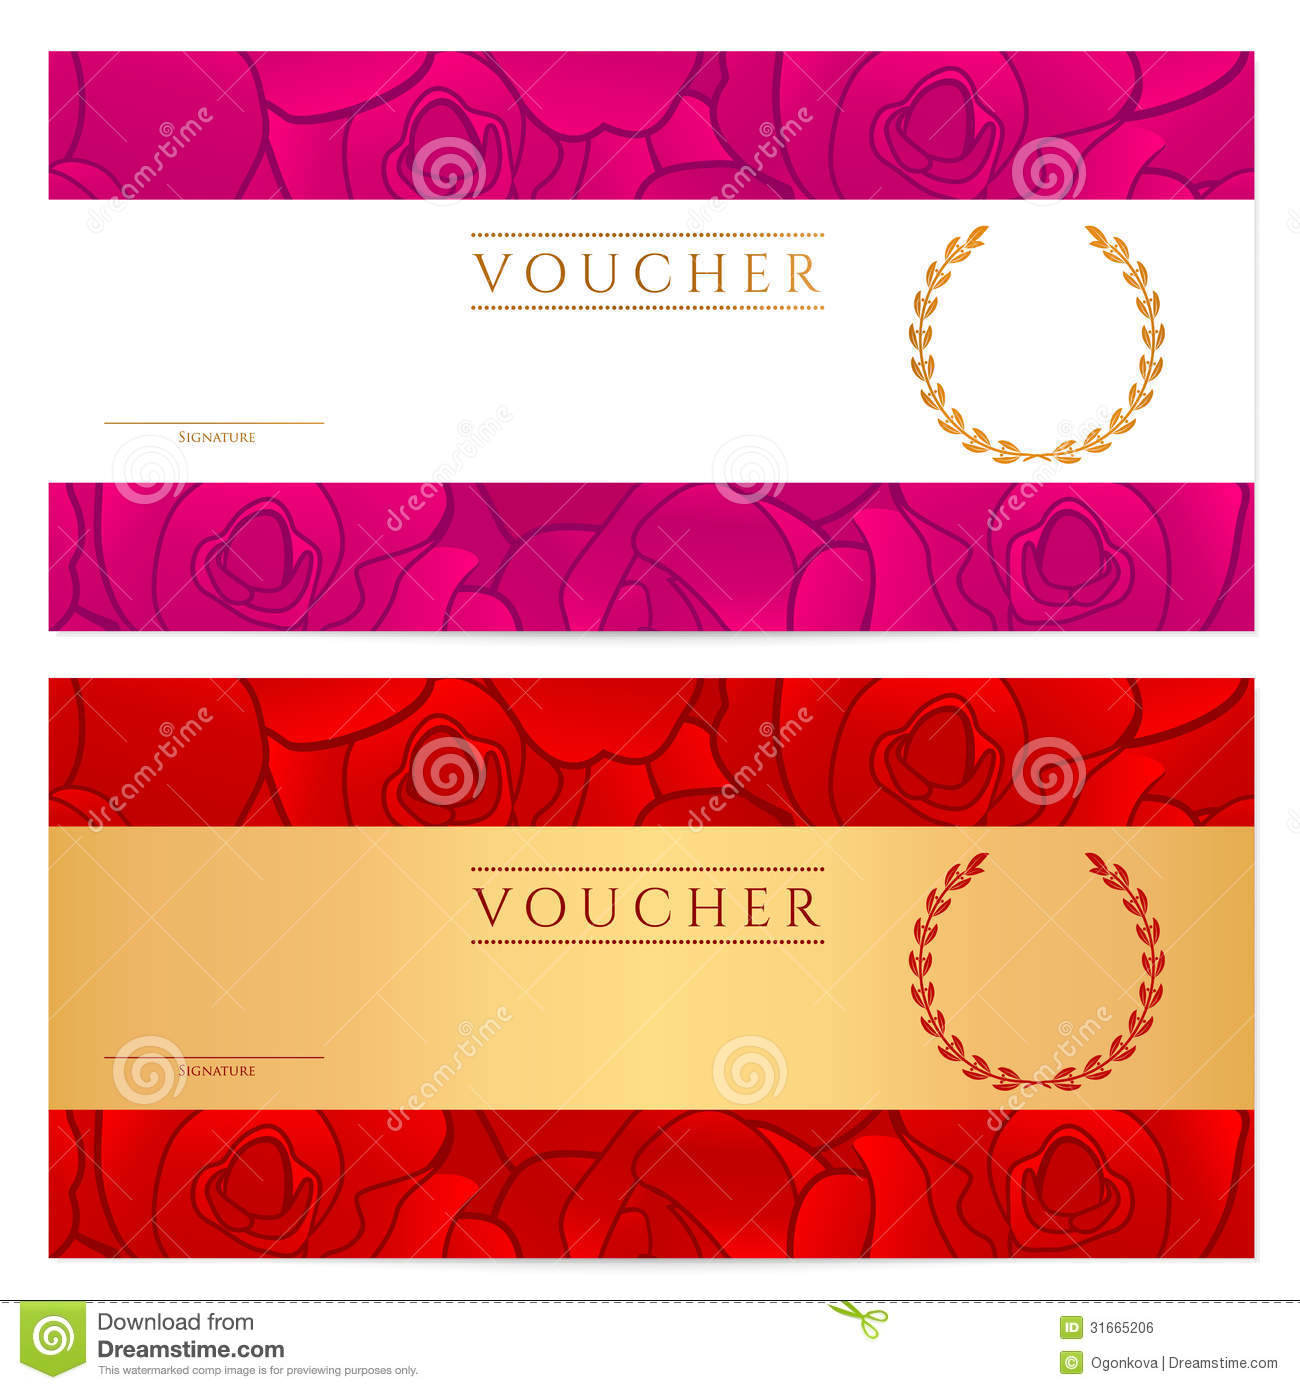 Voucher gift certificate coupon template rose stock vector voucher gift certificate coupon template rose saigontimesfo